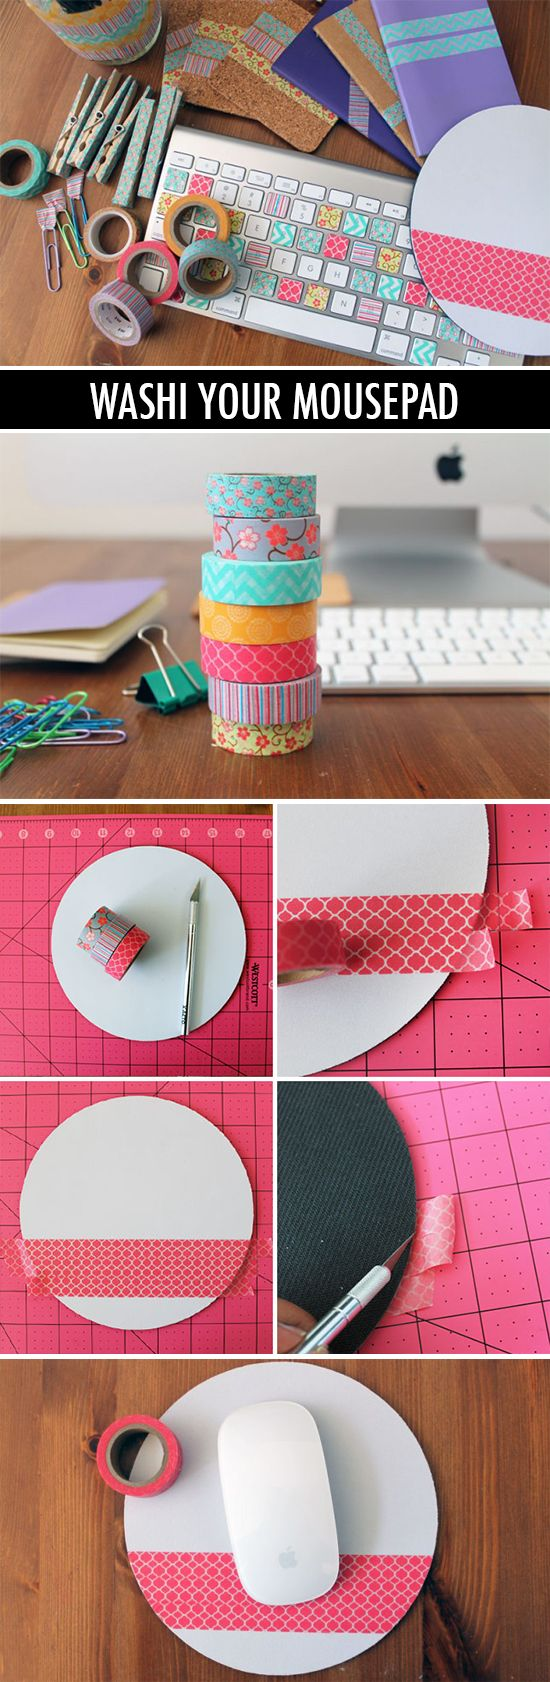 Cutest and easiest DIY project ever! Washi tape your mousepad.